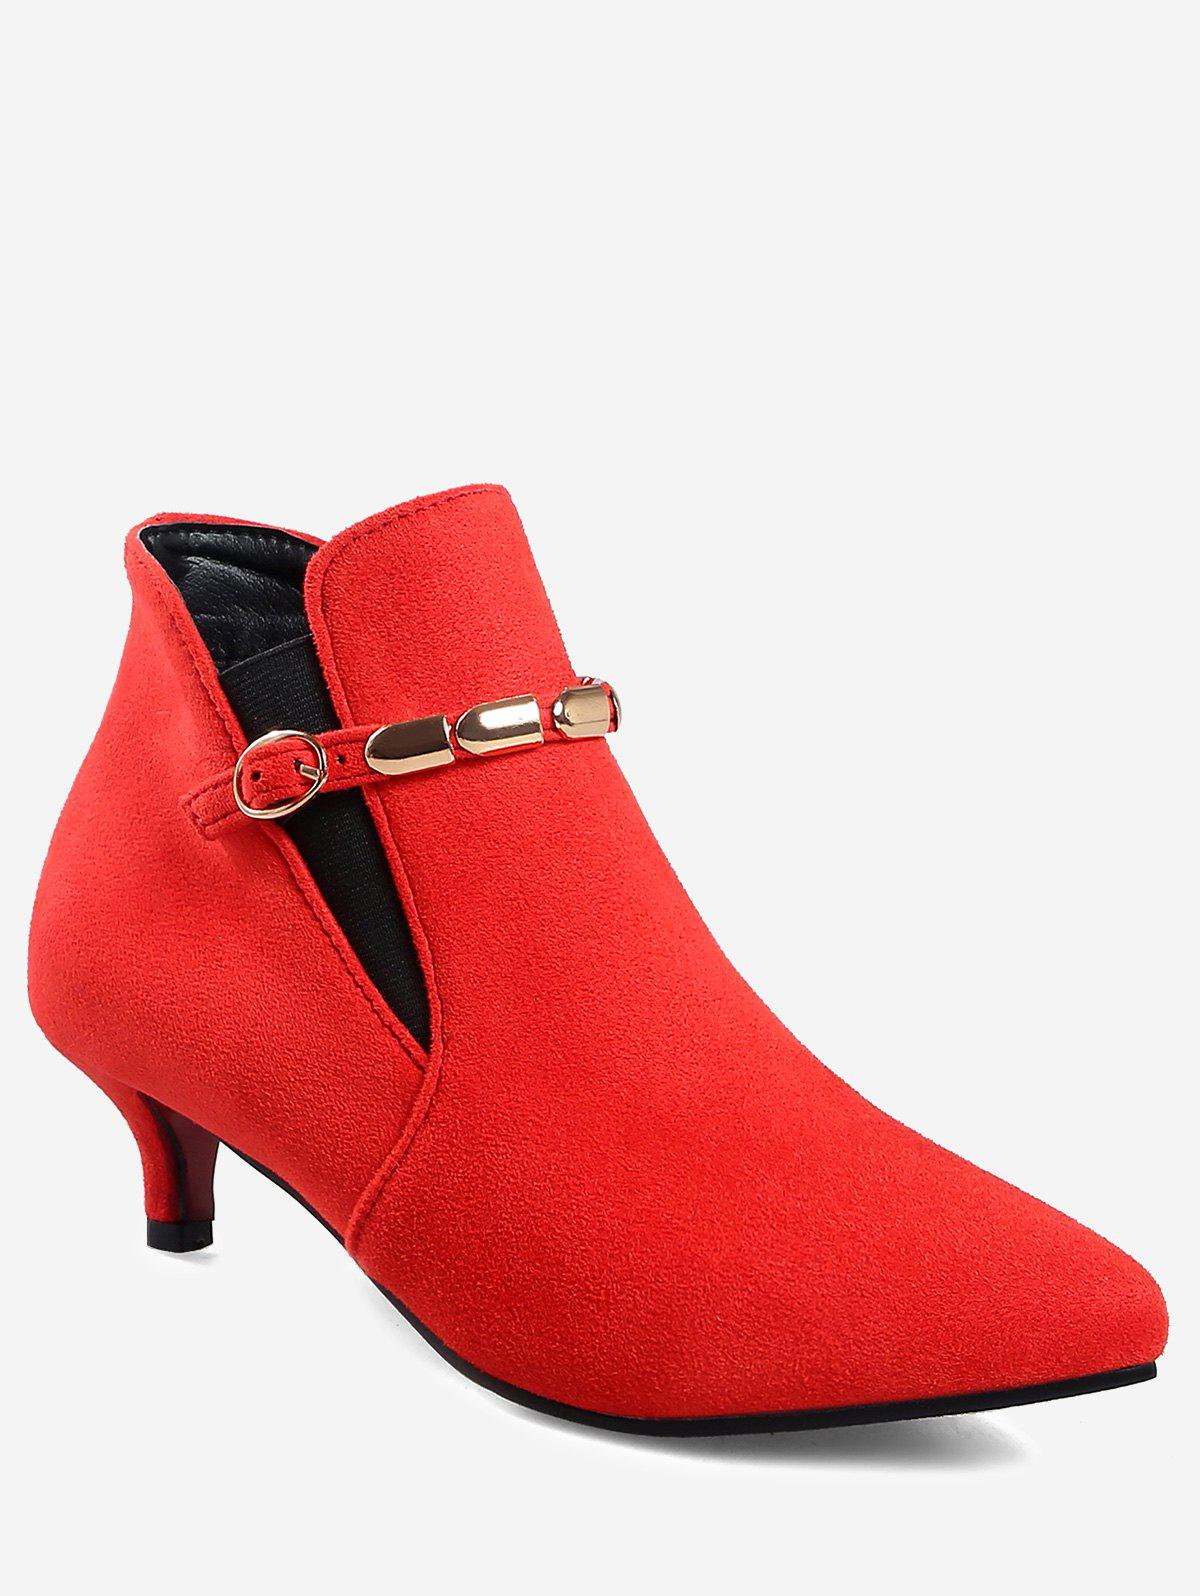 Store Plus Size Pointed Toe Ankle Strap Boots